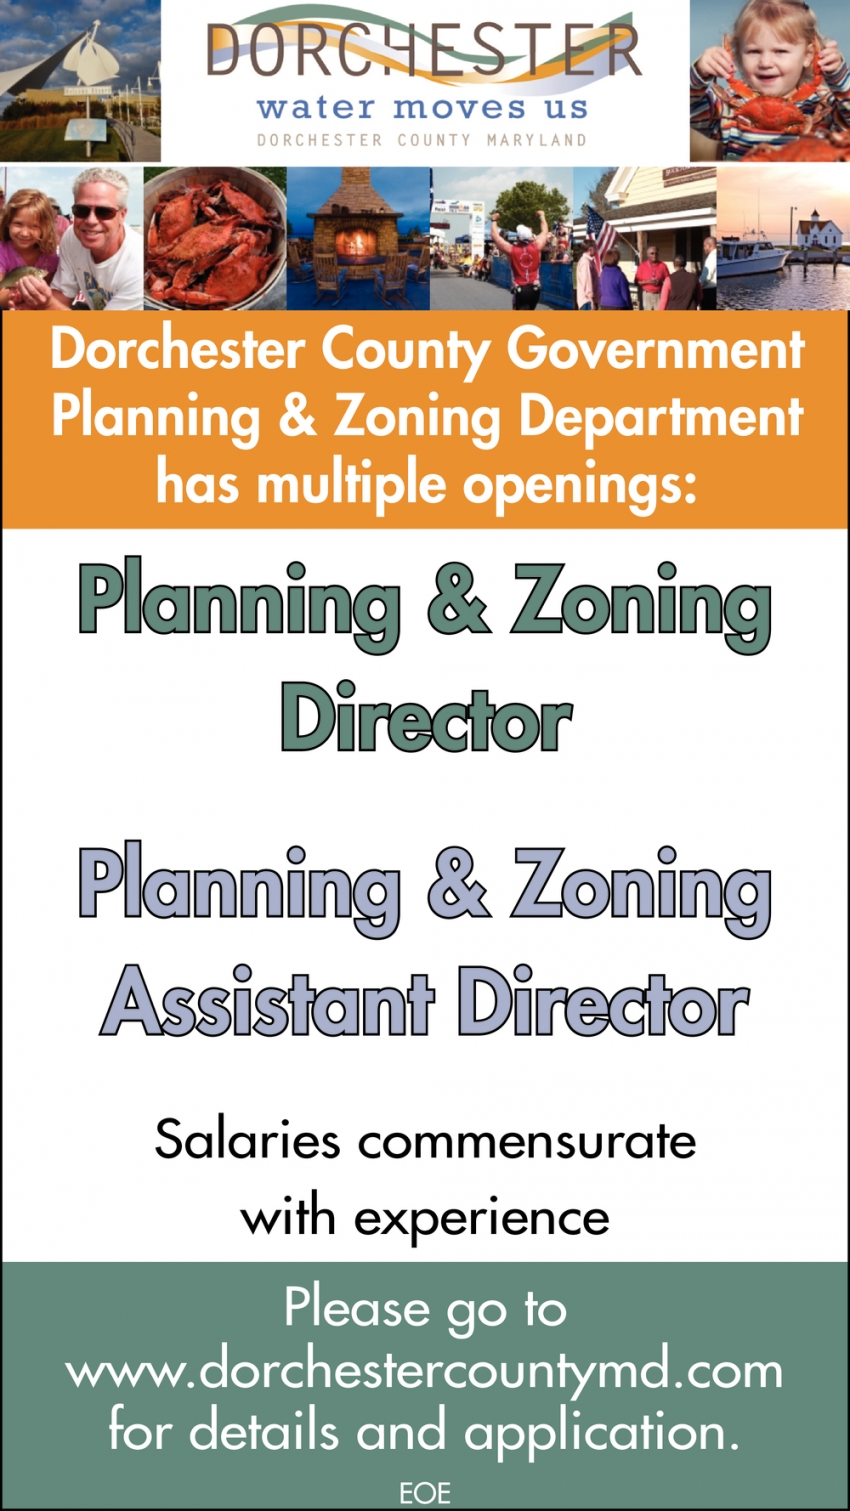 Planning & Zoning Director Needed